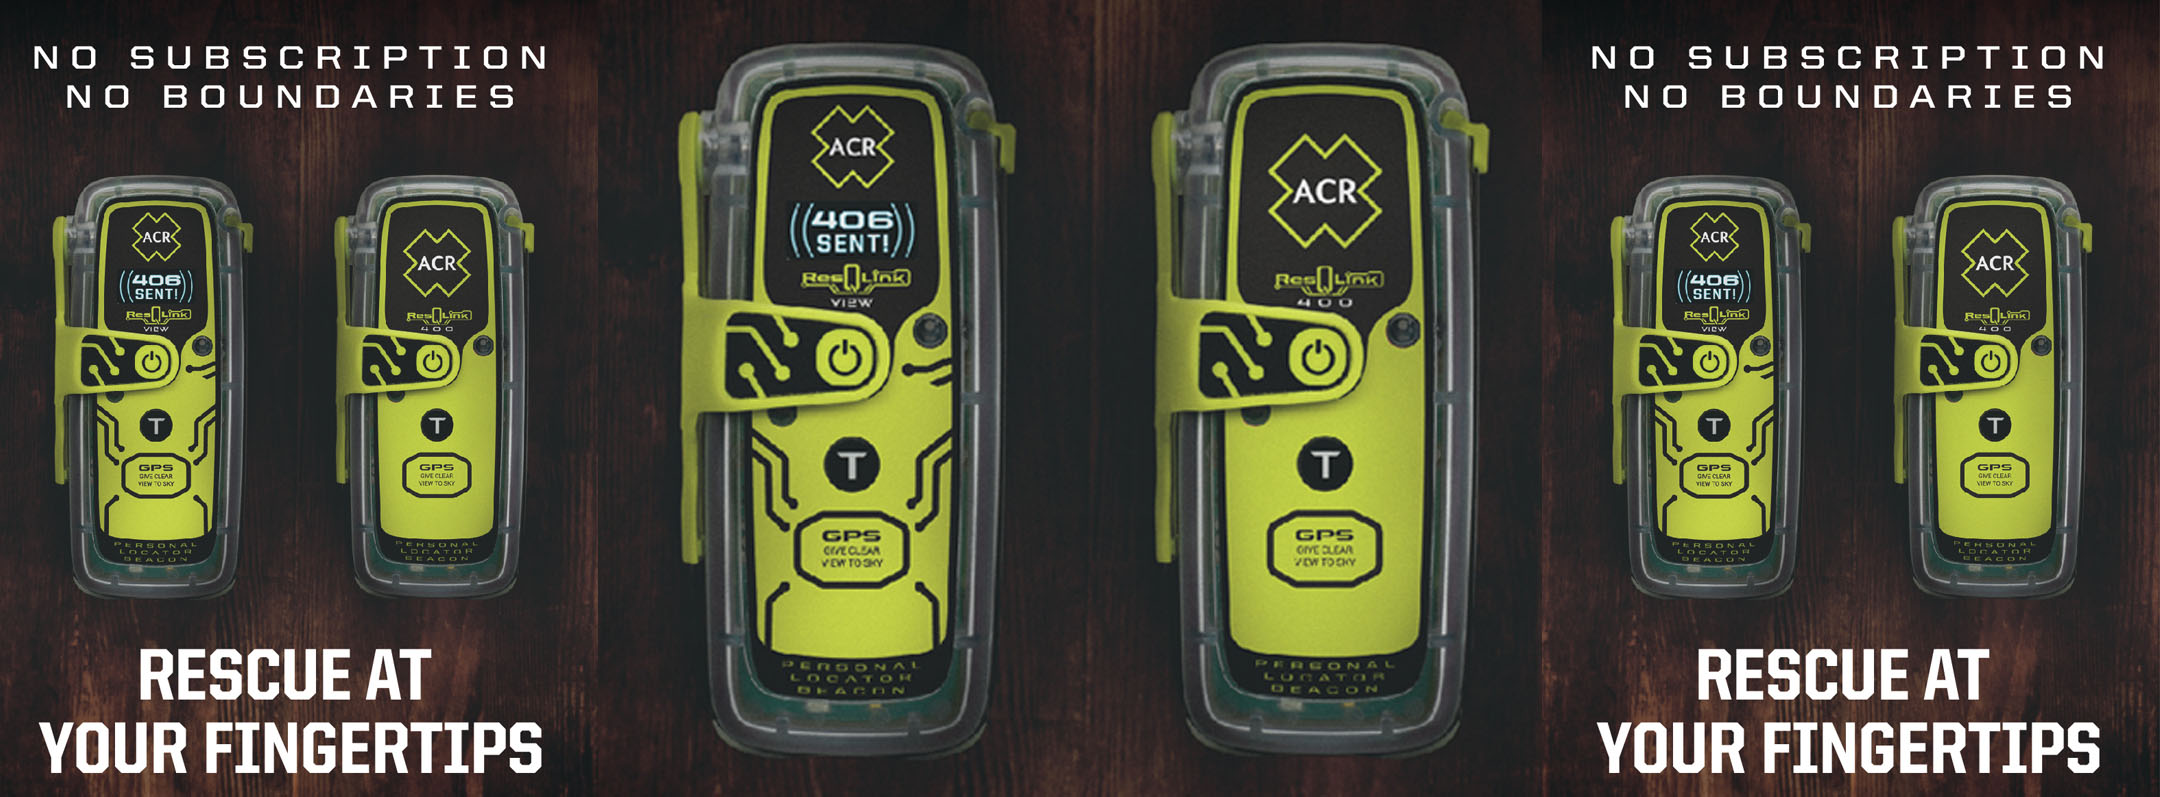 ResQLink View Personal Locator Beacon Banner